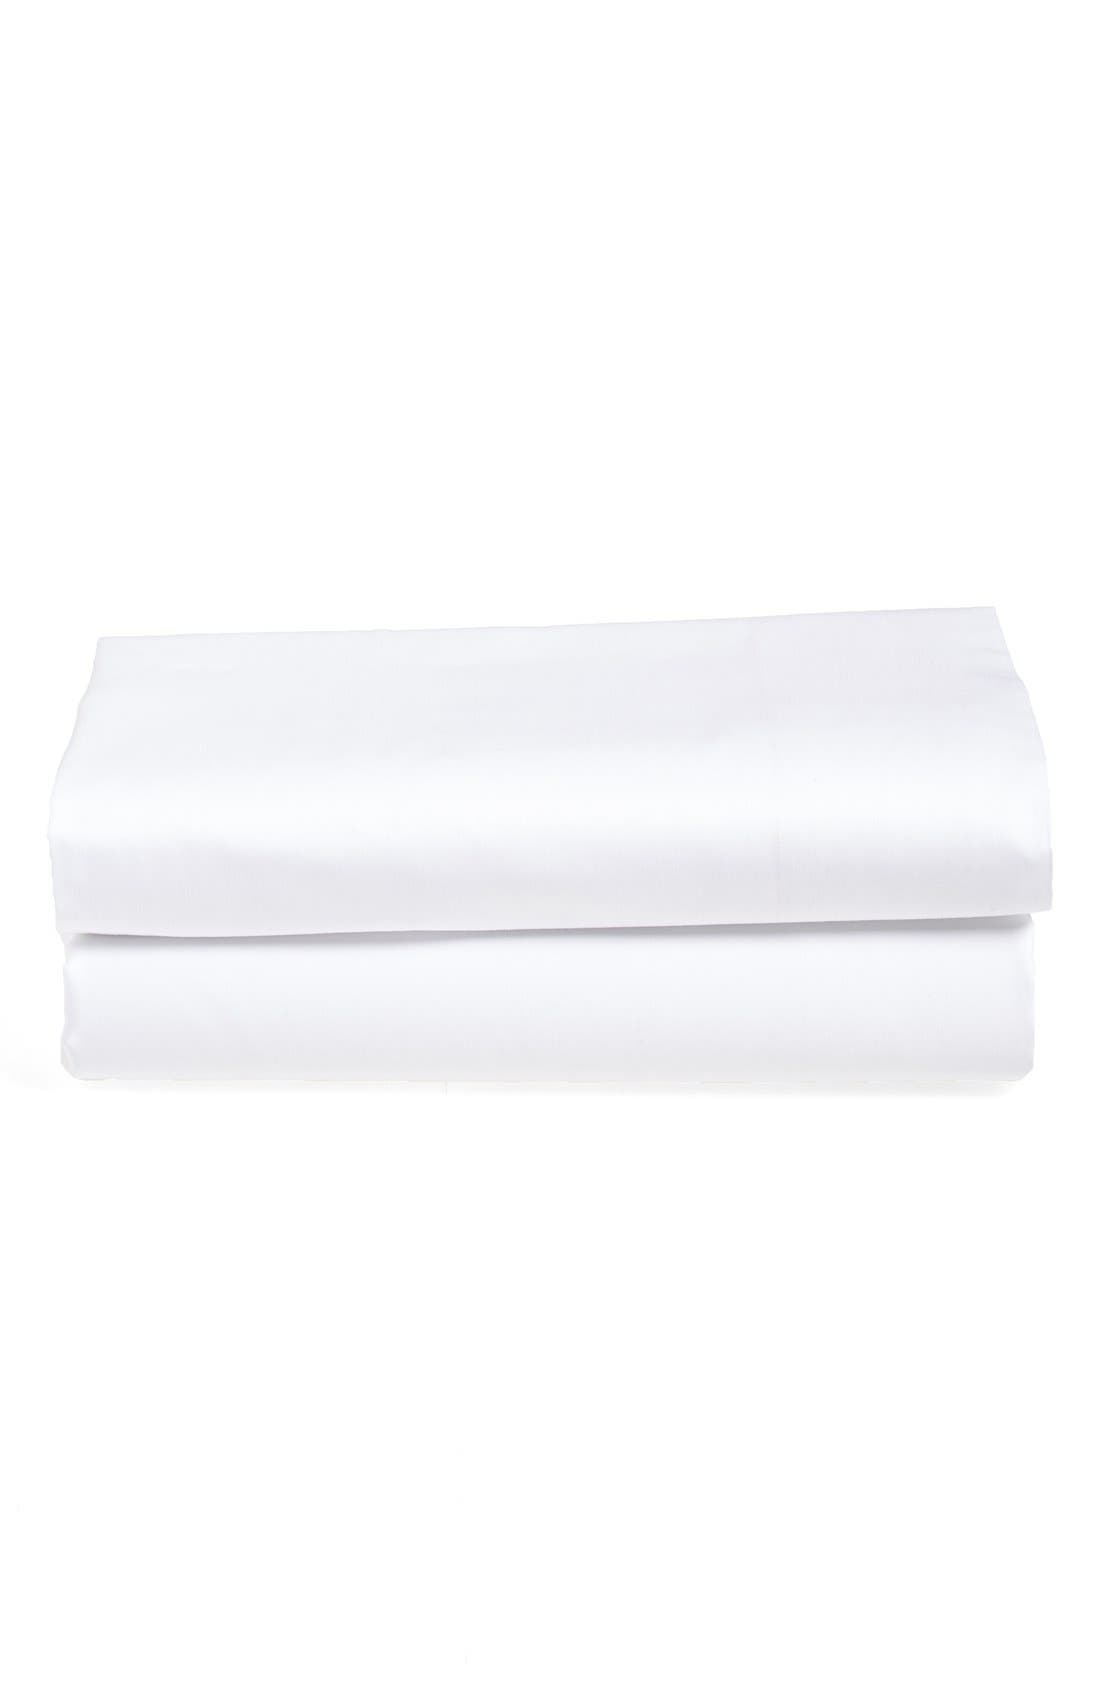 Alternate Image 1 Selected - Westin At Home 'Ultra Luxe' 600 Thread Count Fitted Sheet